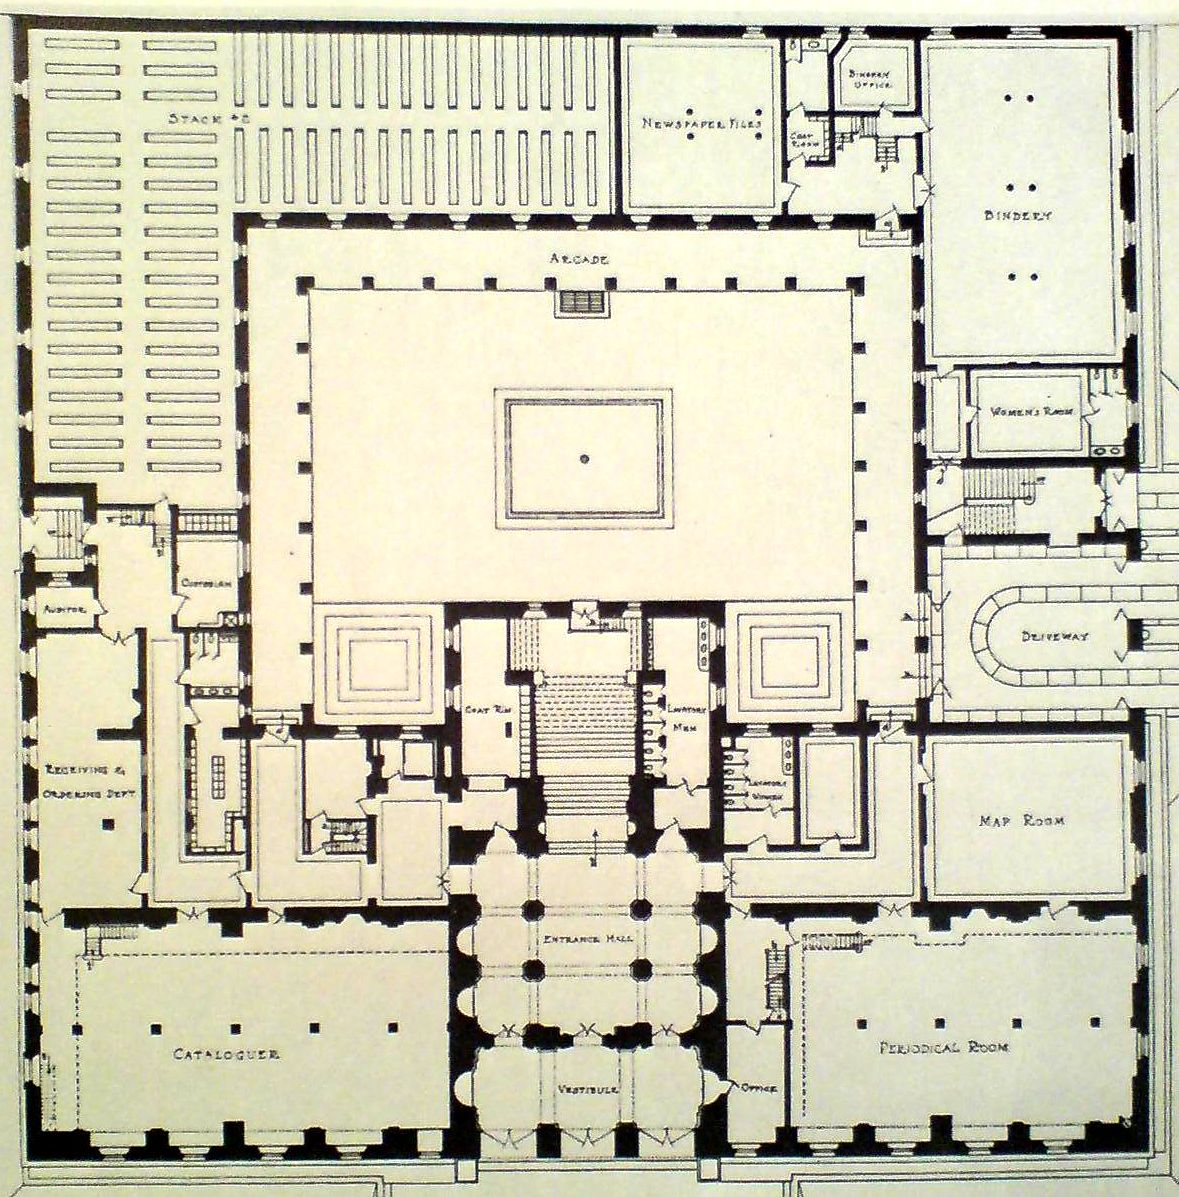 boston public library map First Floor Library Floor Plan Floor Plans Library Plan boston public library map